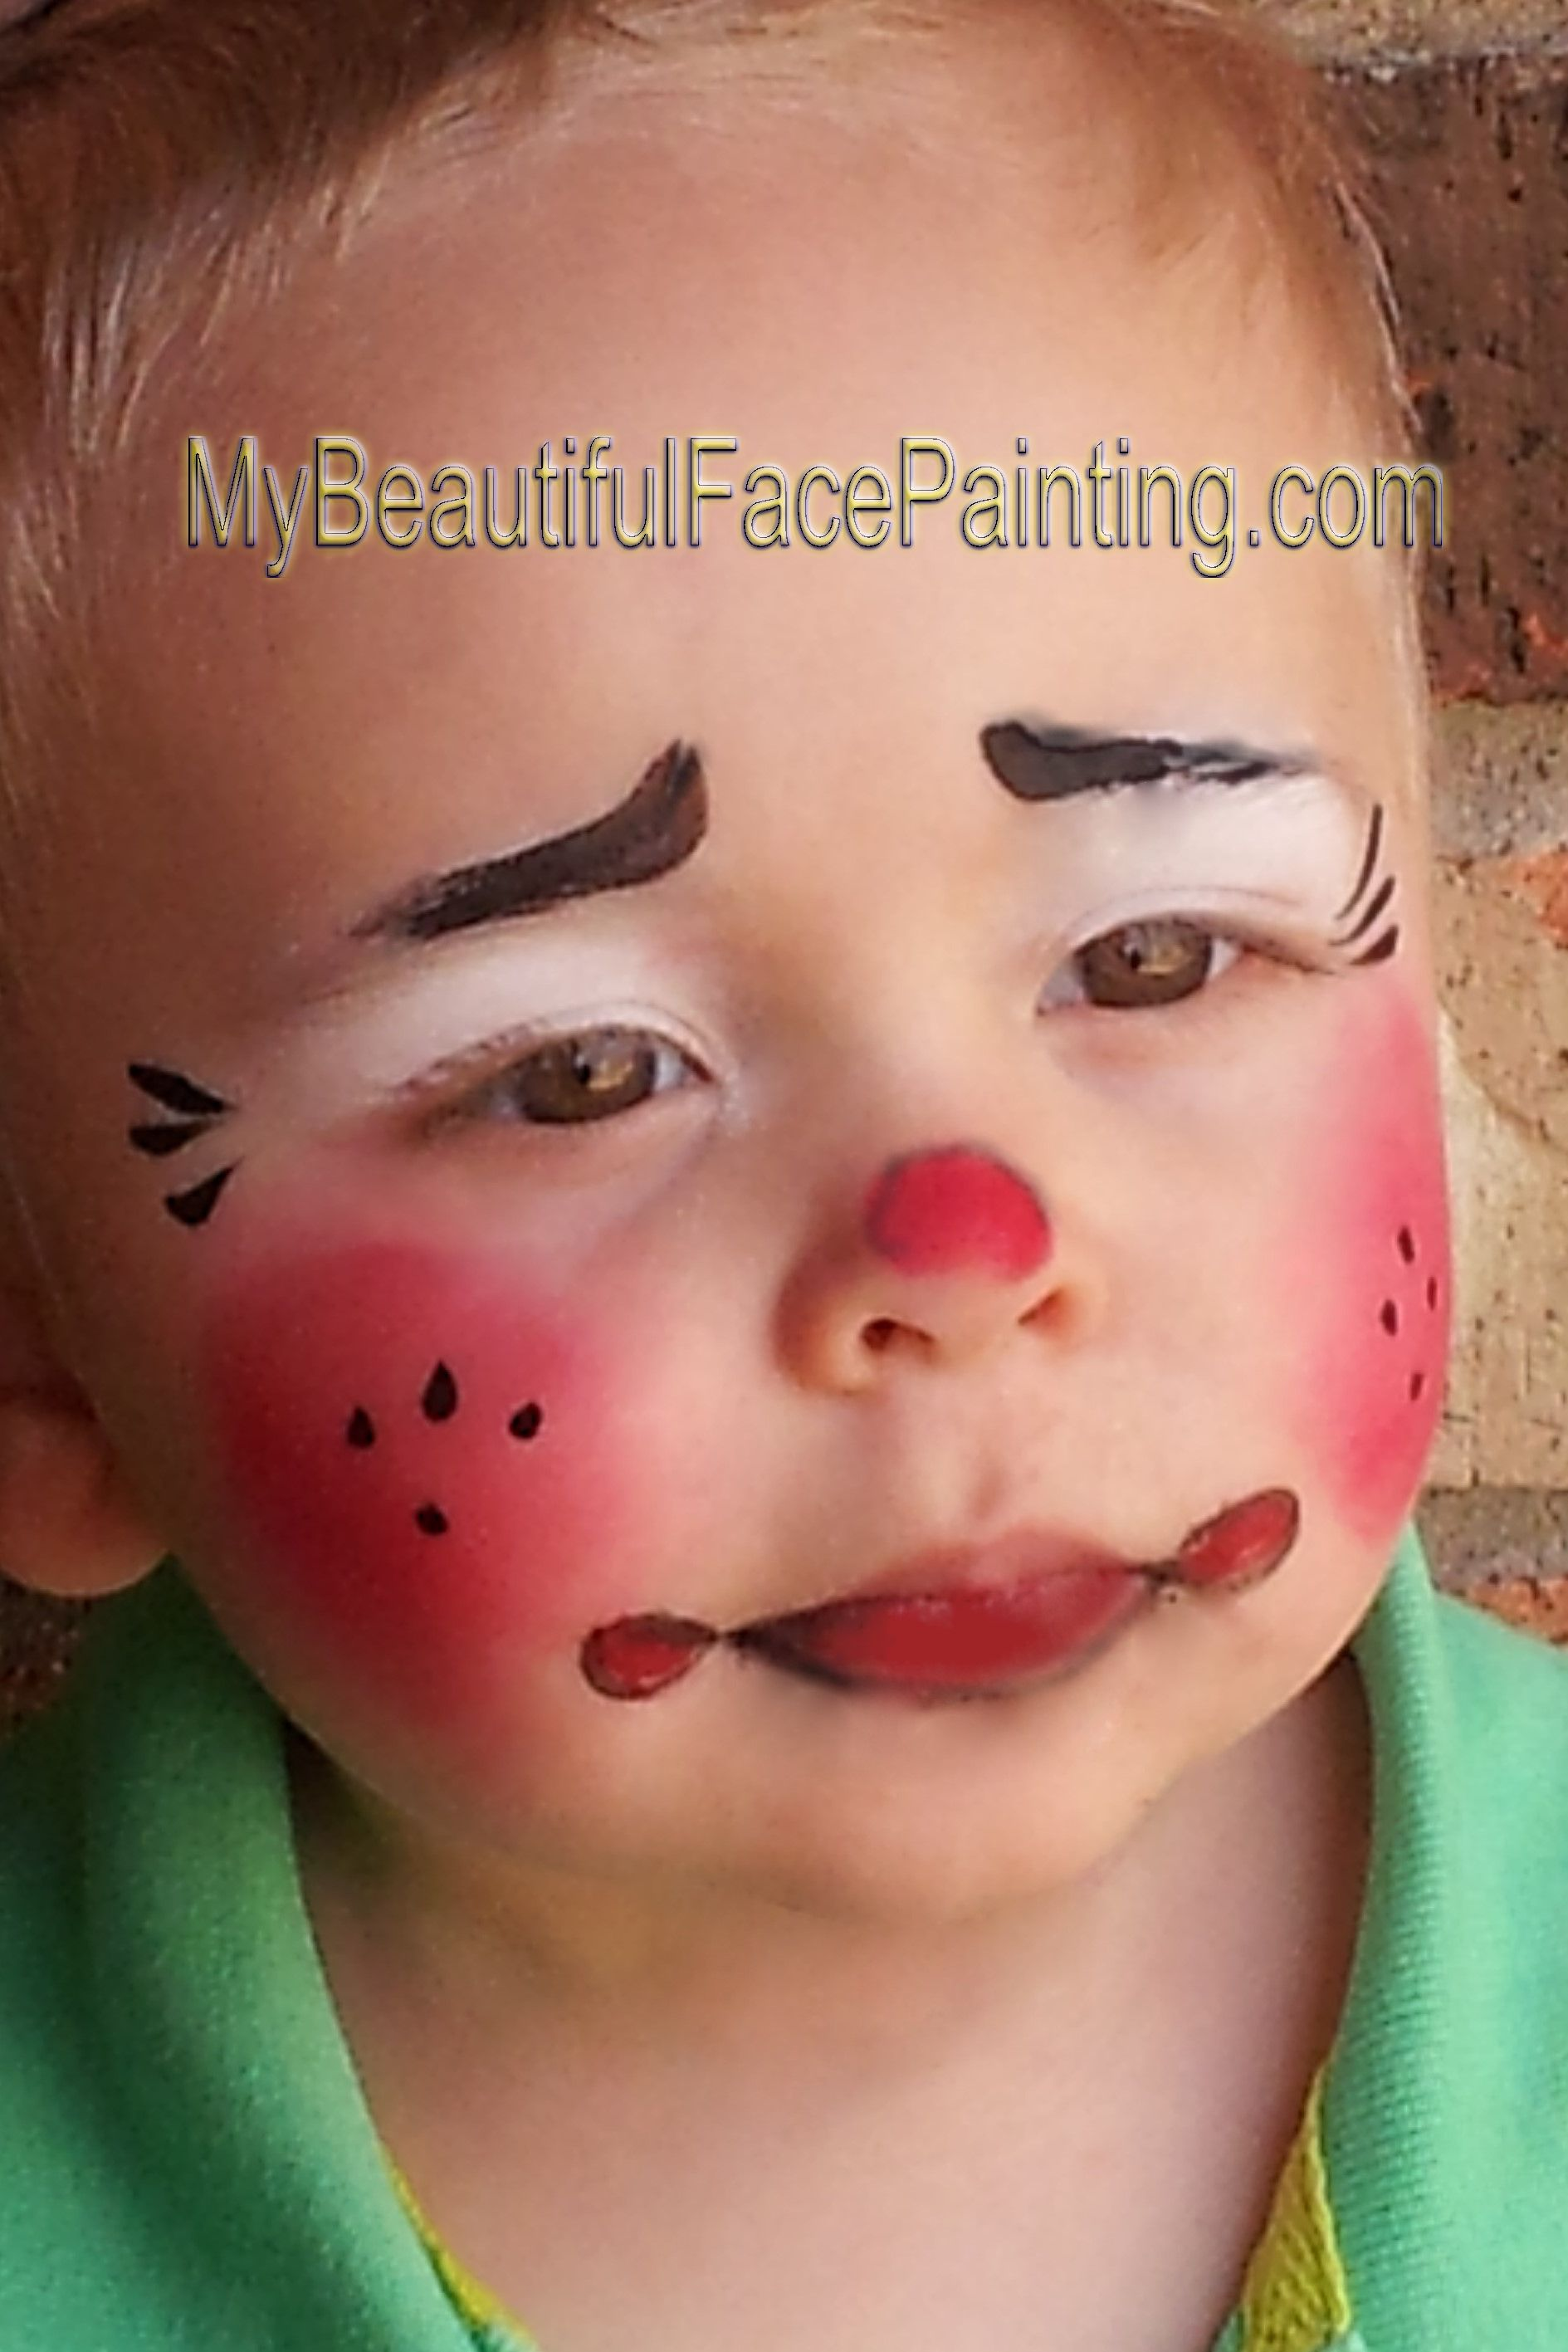 Baby Clown Face Paint Starblend Powders For Cheeks And Nose And White For Eyes Dfx Black And Tag Red Clown Face Paint Clown Faces Face Painting